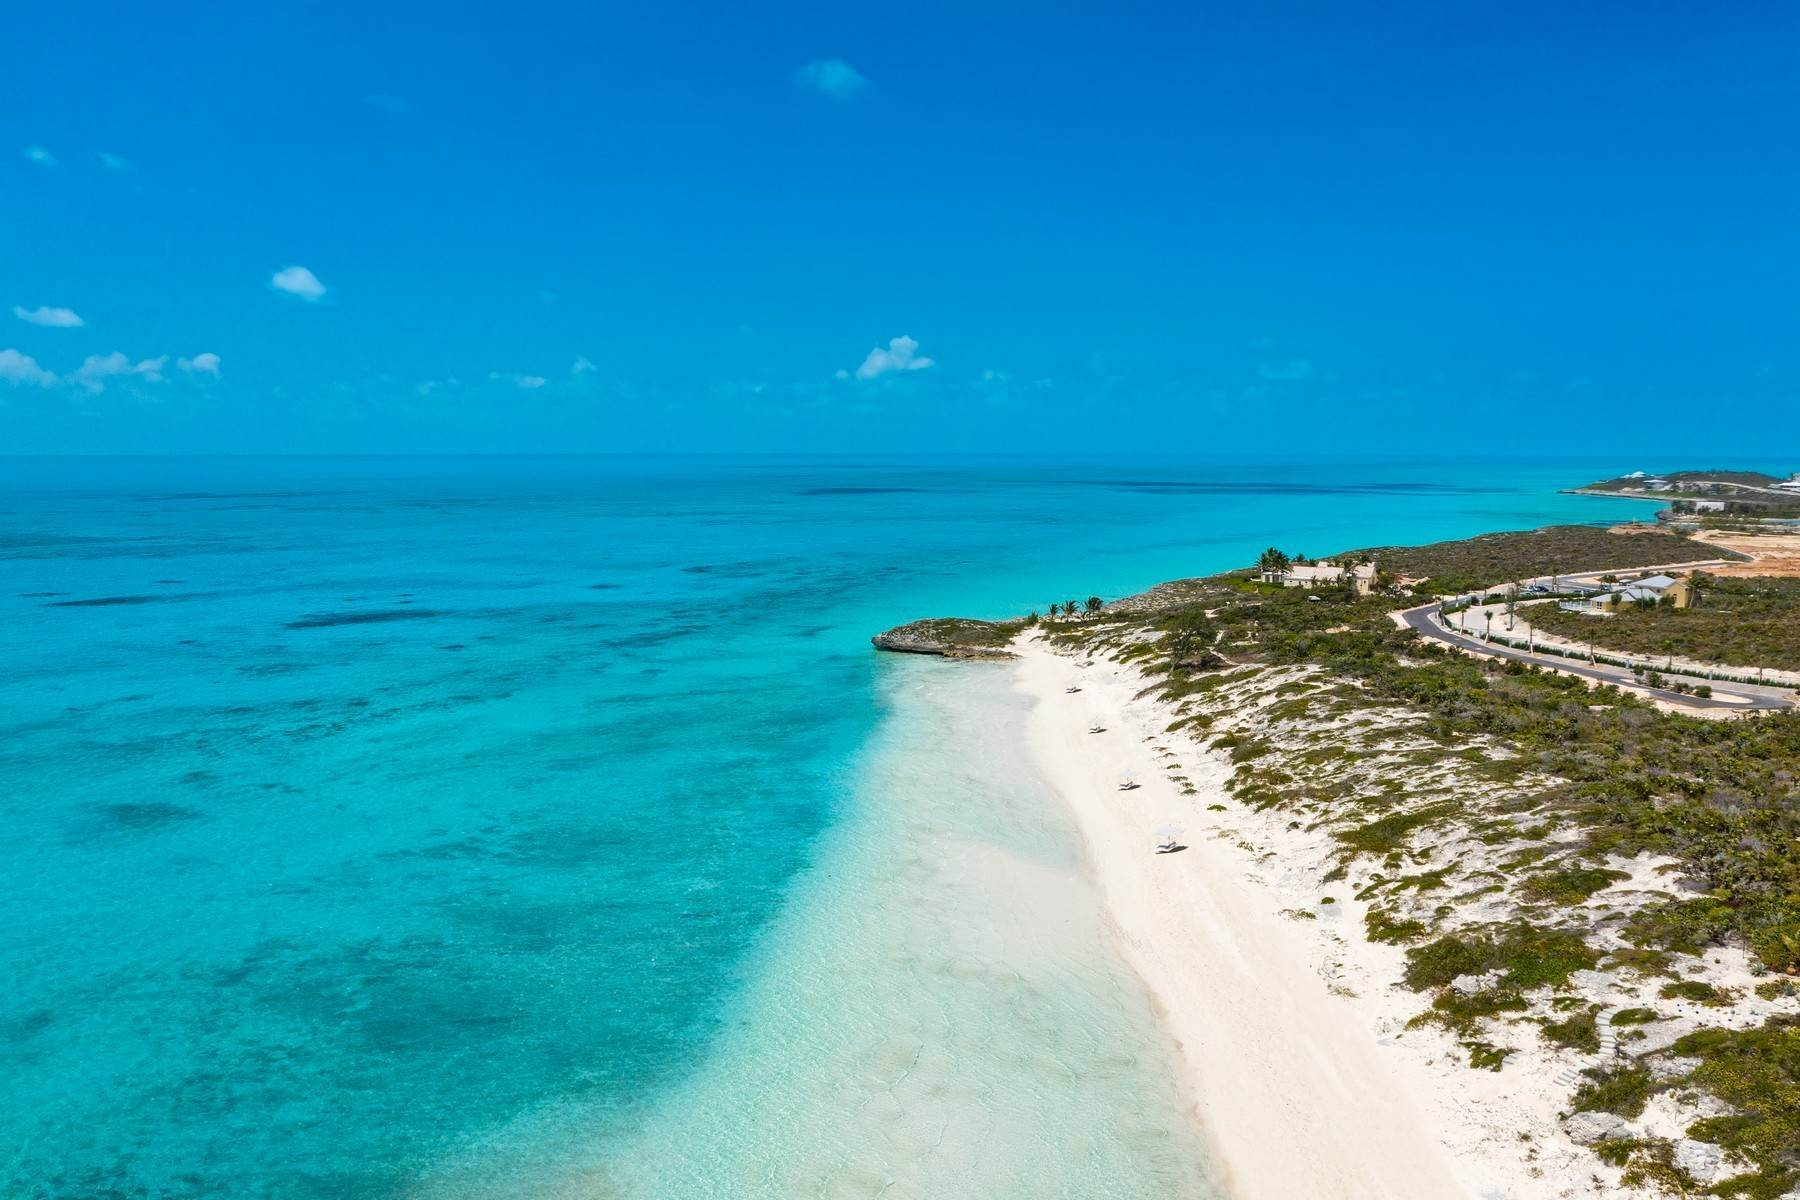 16. Single Family Homes for Sale at LONG BAY BEACH DUNE VILLA 1 AT SOUTH BANK - THE OCEAN ESTATE South Bank, Long Bay, Providenciales Turks And Caicos Islands